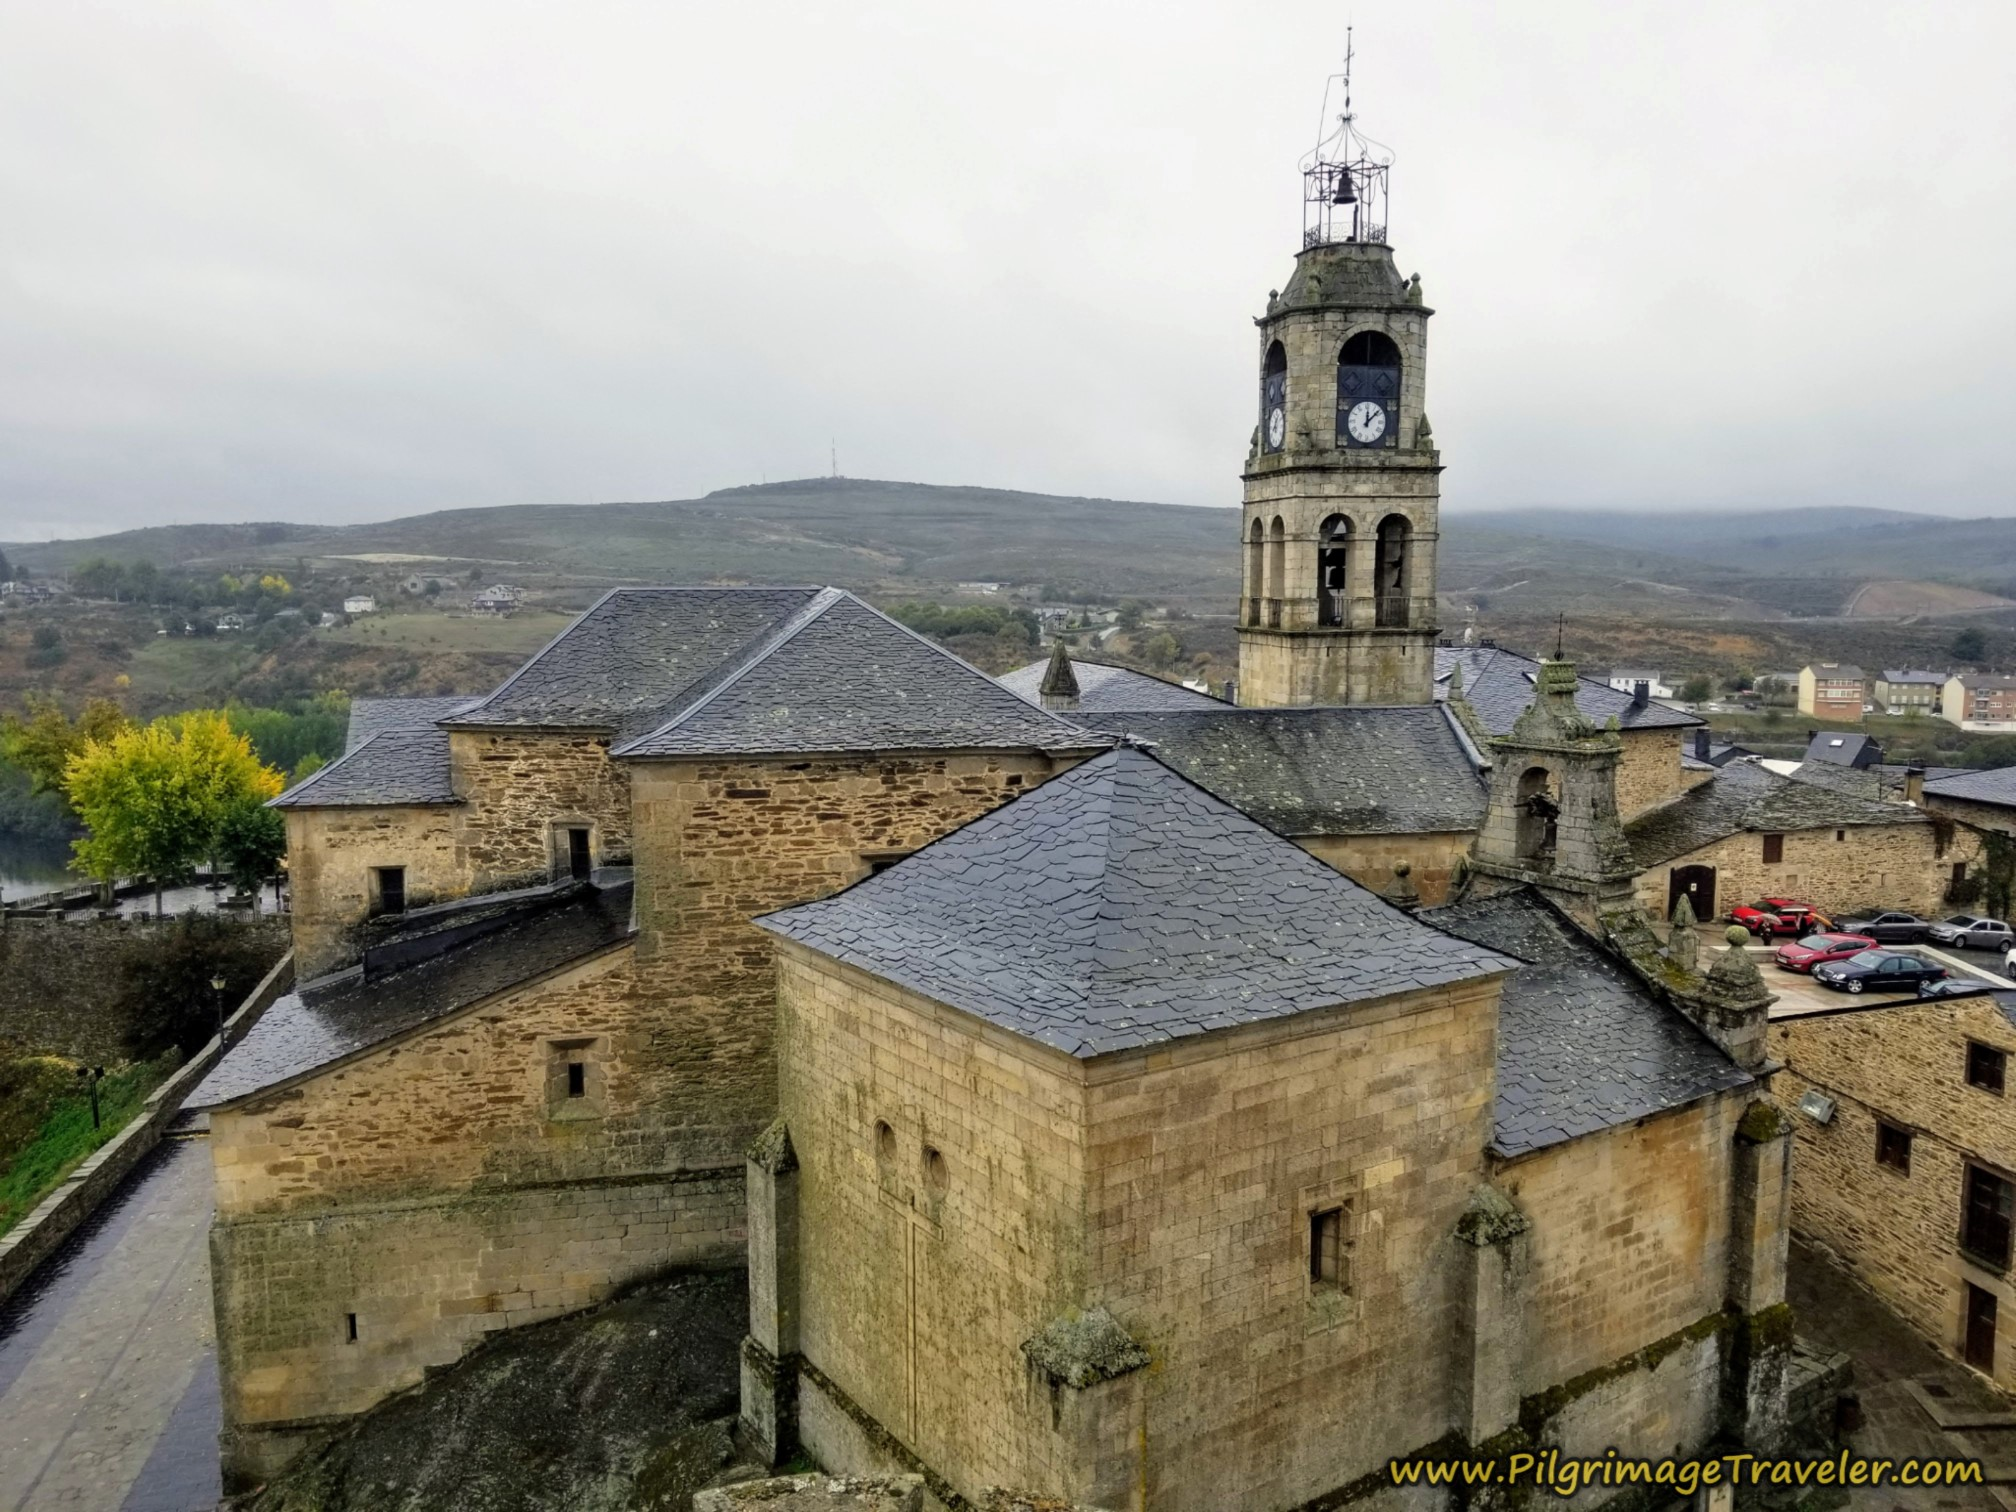 Iglesia de Santa María de Azogue, from Rampart Walls